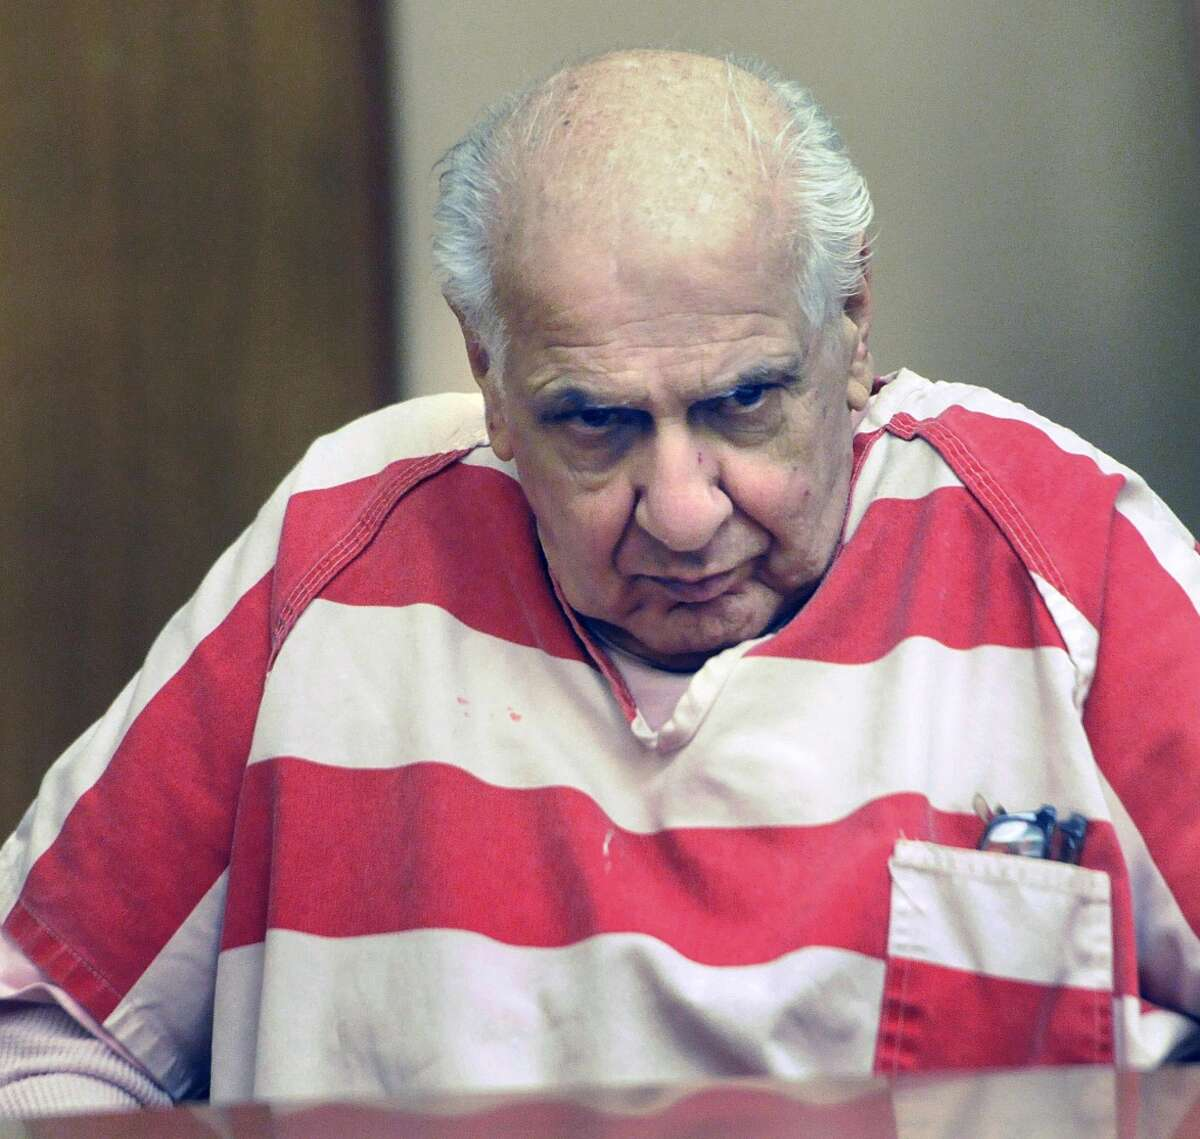 FILE - Serial killer Joseph Naso was sentenced to death for strangling four Northern California women who were raped and whose bodies were discarded along rural roads in the late 1970s and early 1990s. Naso was dubbed the Alphabet Killer because of a pattern among the victims: Their first and last names started with the same letter. Naso was convicted of killing Roxene Roggasch, 18, in 1977; Carmen Colon, 22, in 1978; Pamela Parsons, 38, in 1993; and Tracy Tafoya, 31, in 1994.